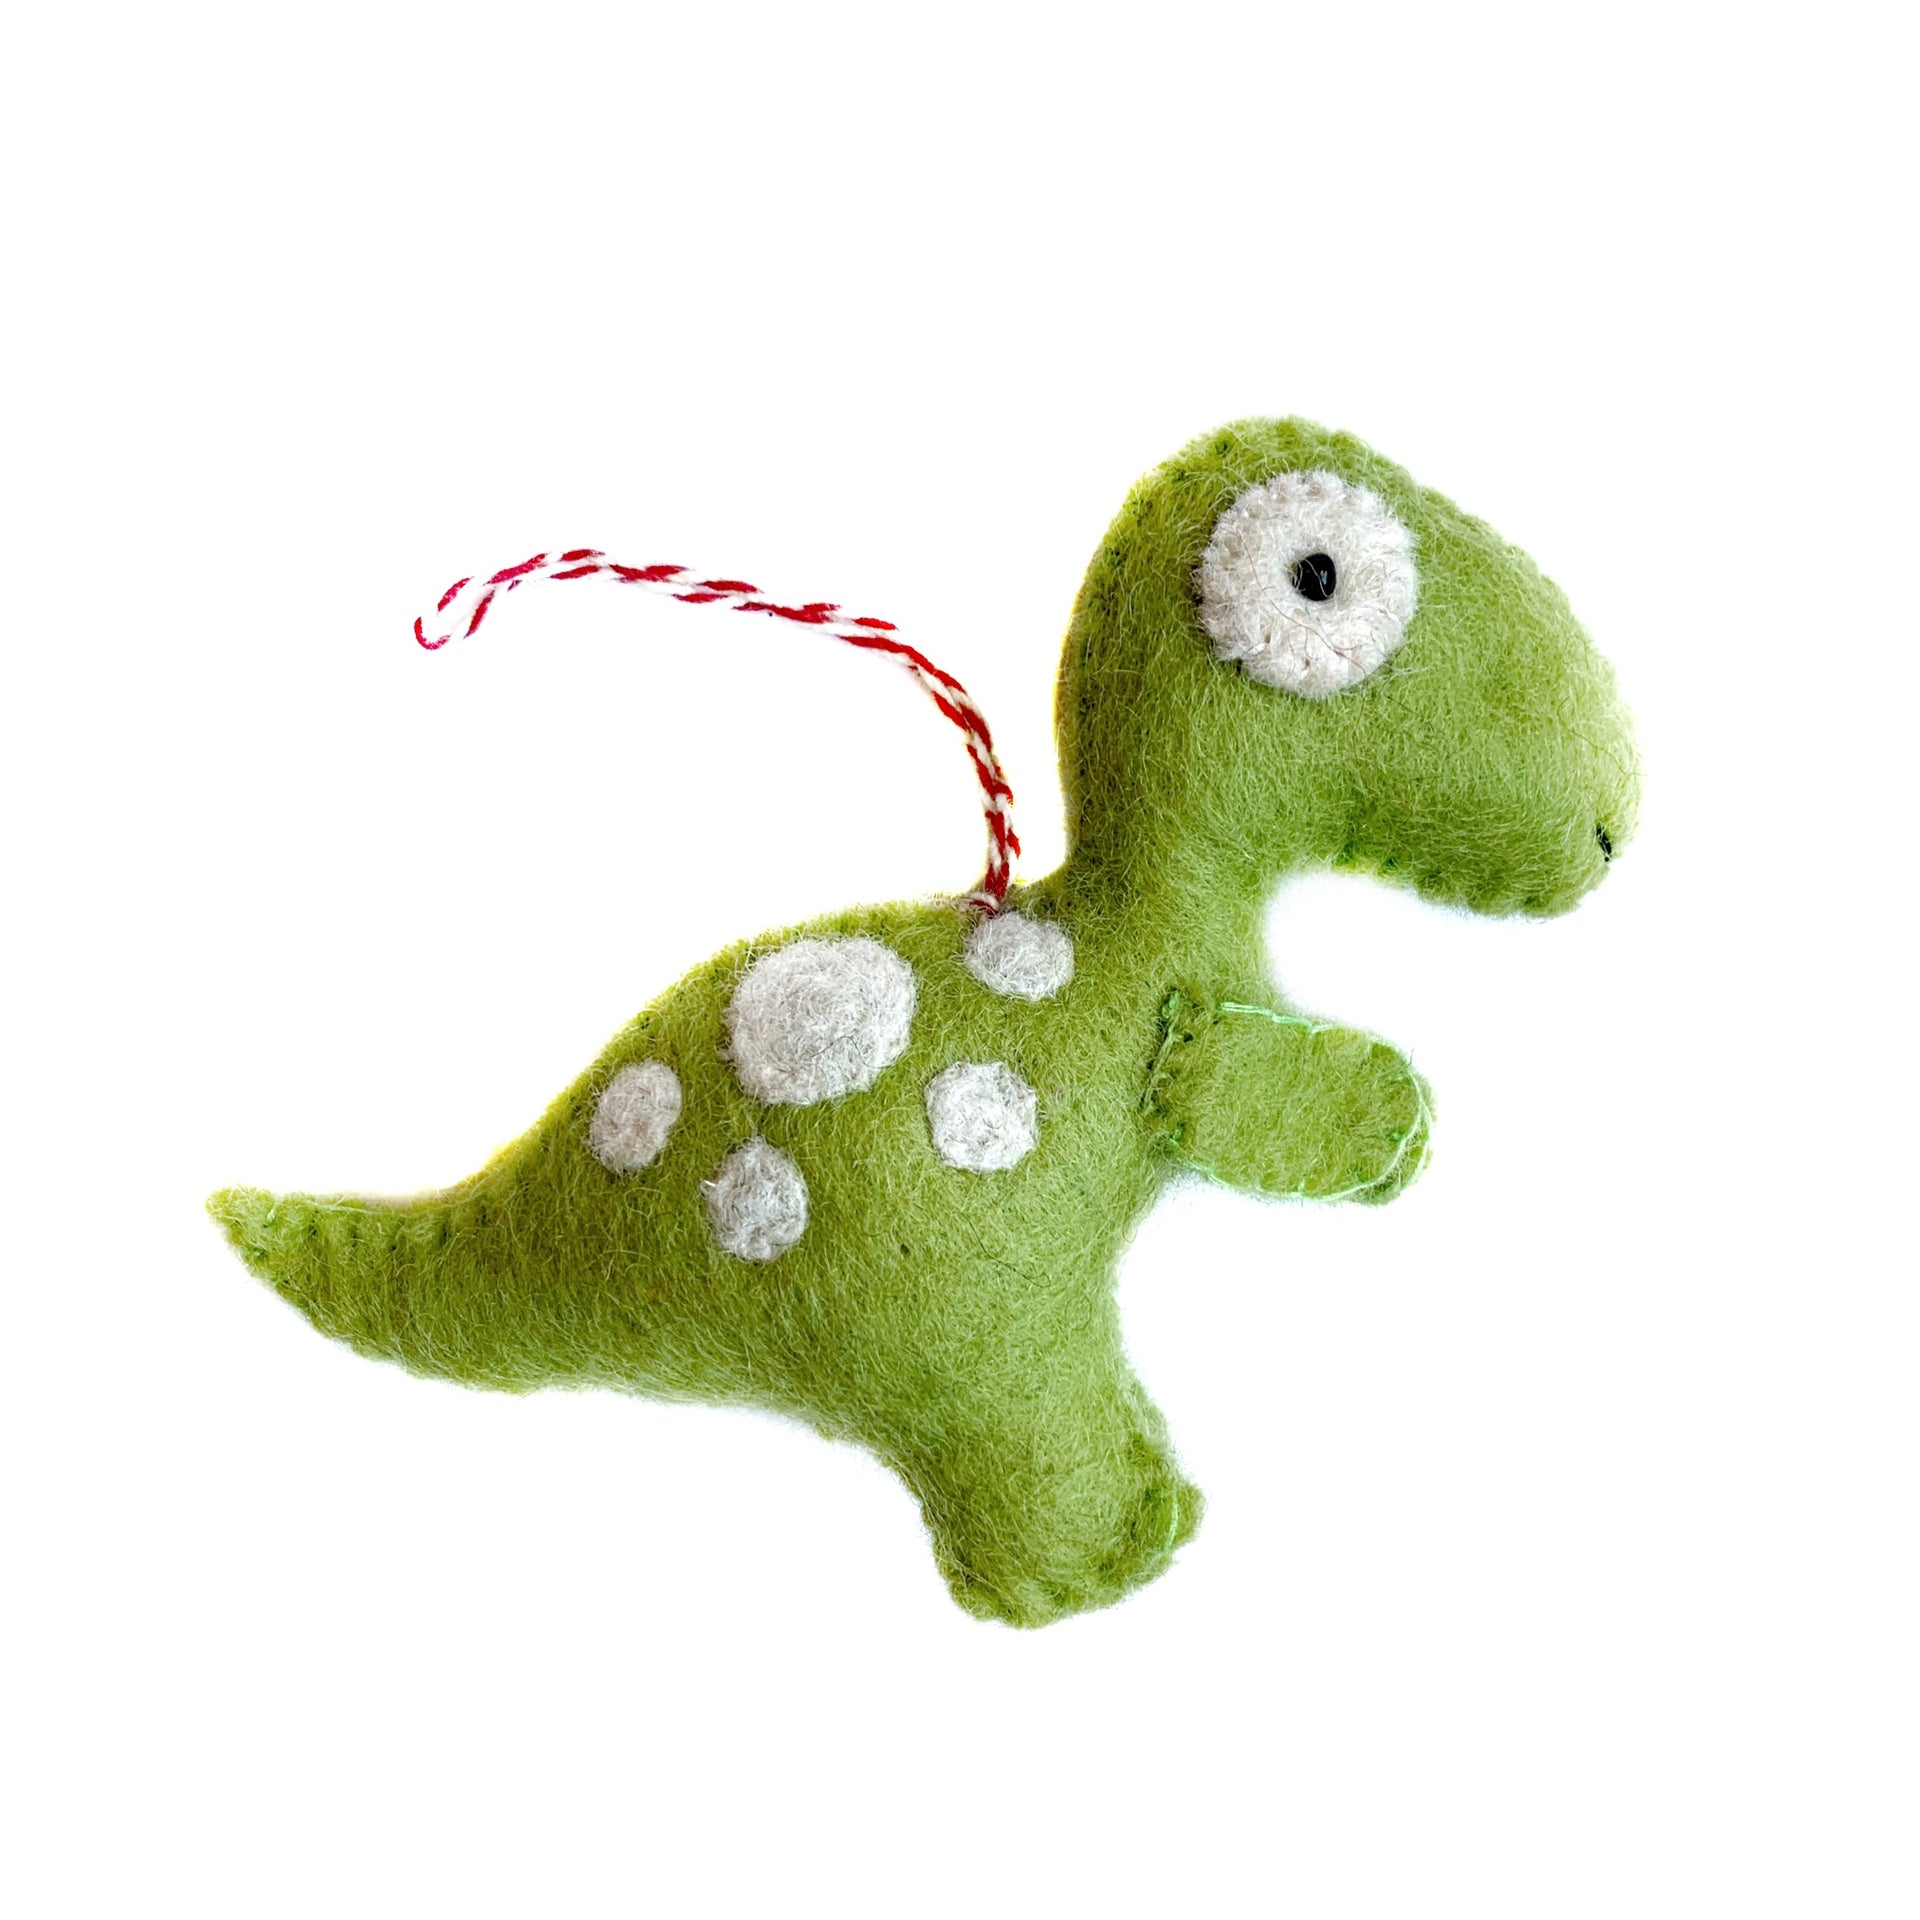 T-Rex Dinosaur Christmas Ornament Cute Handmade